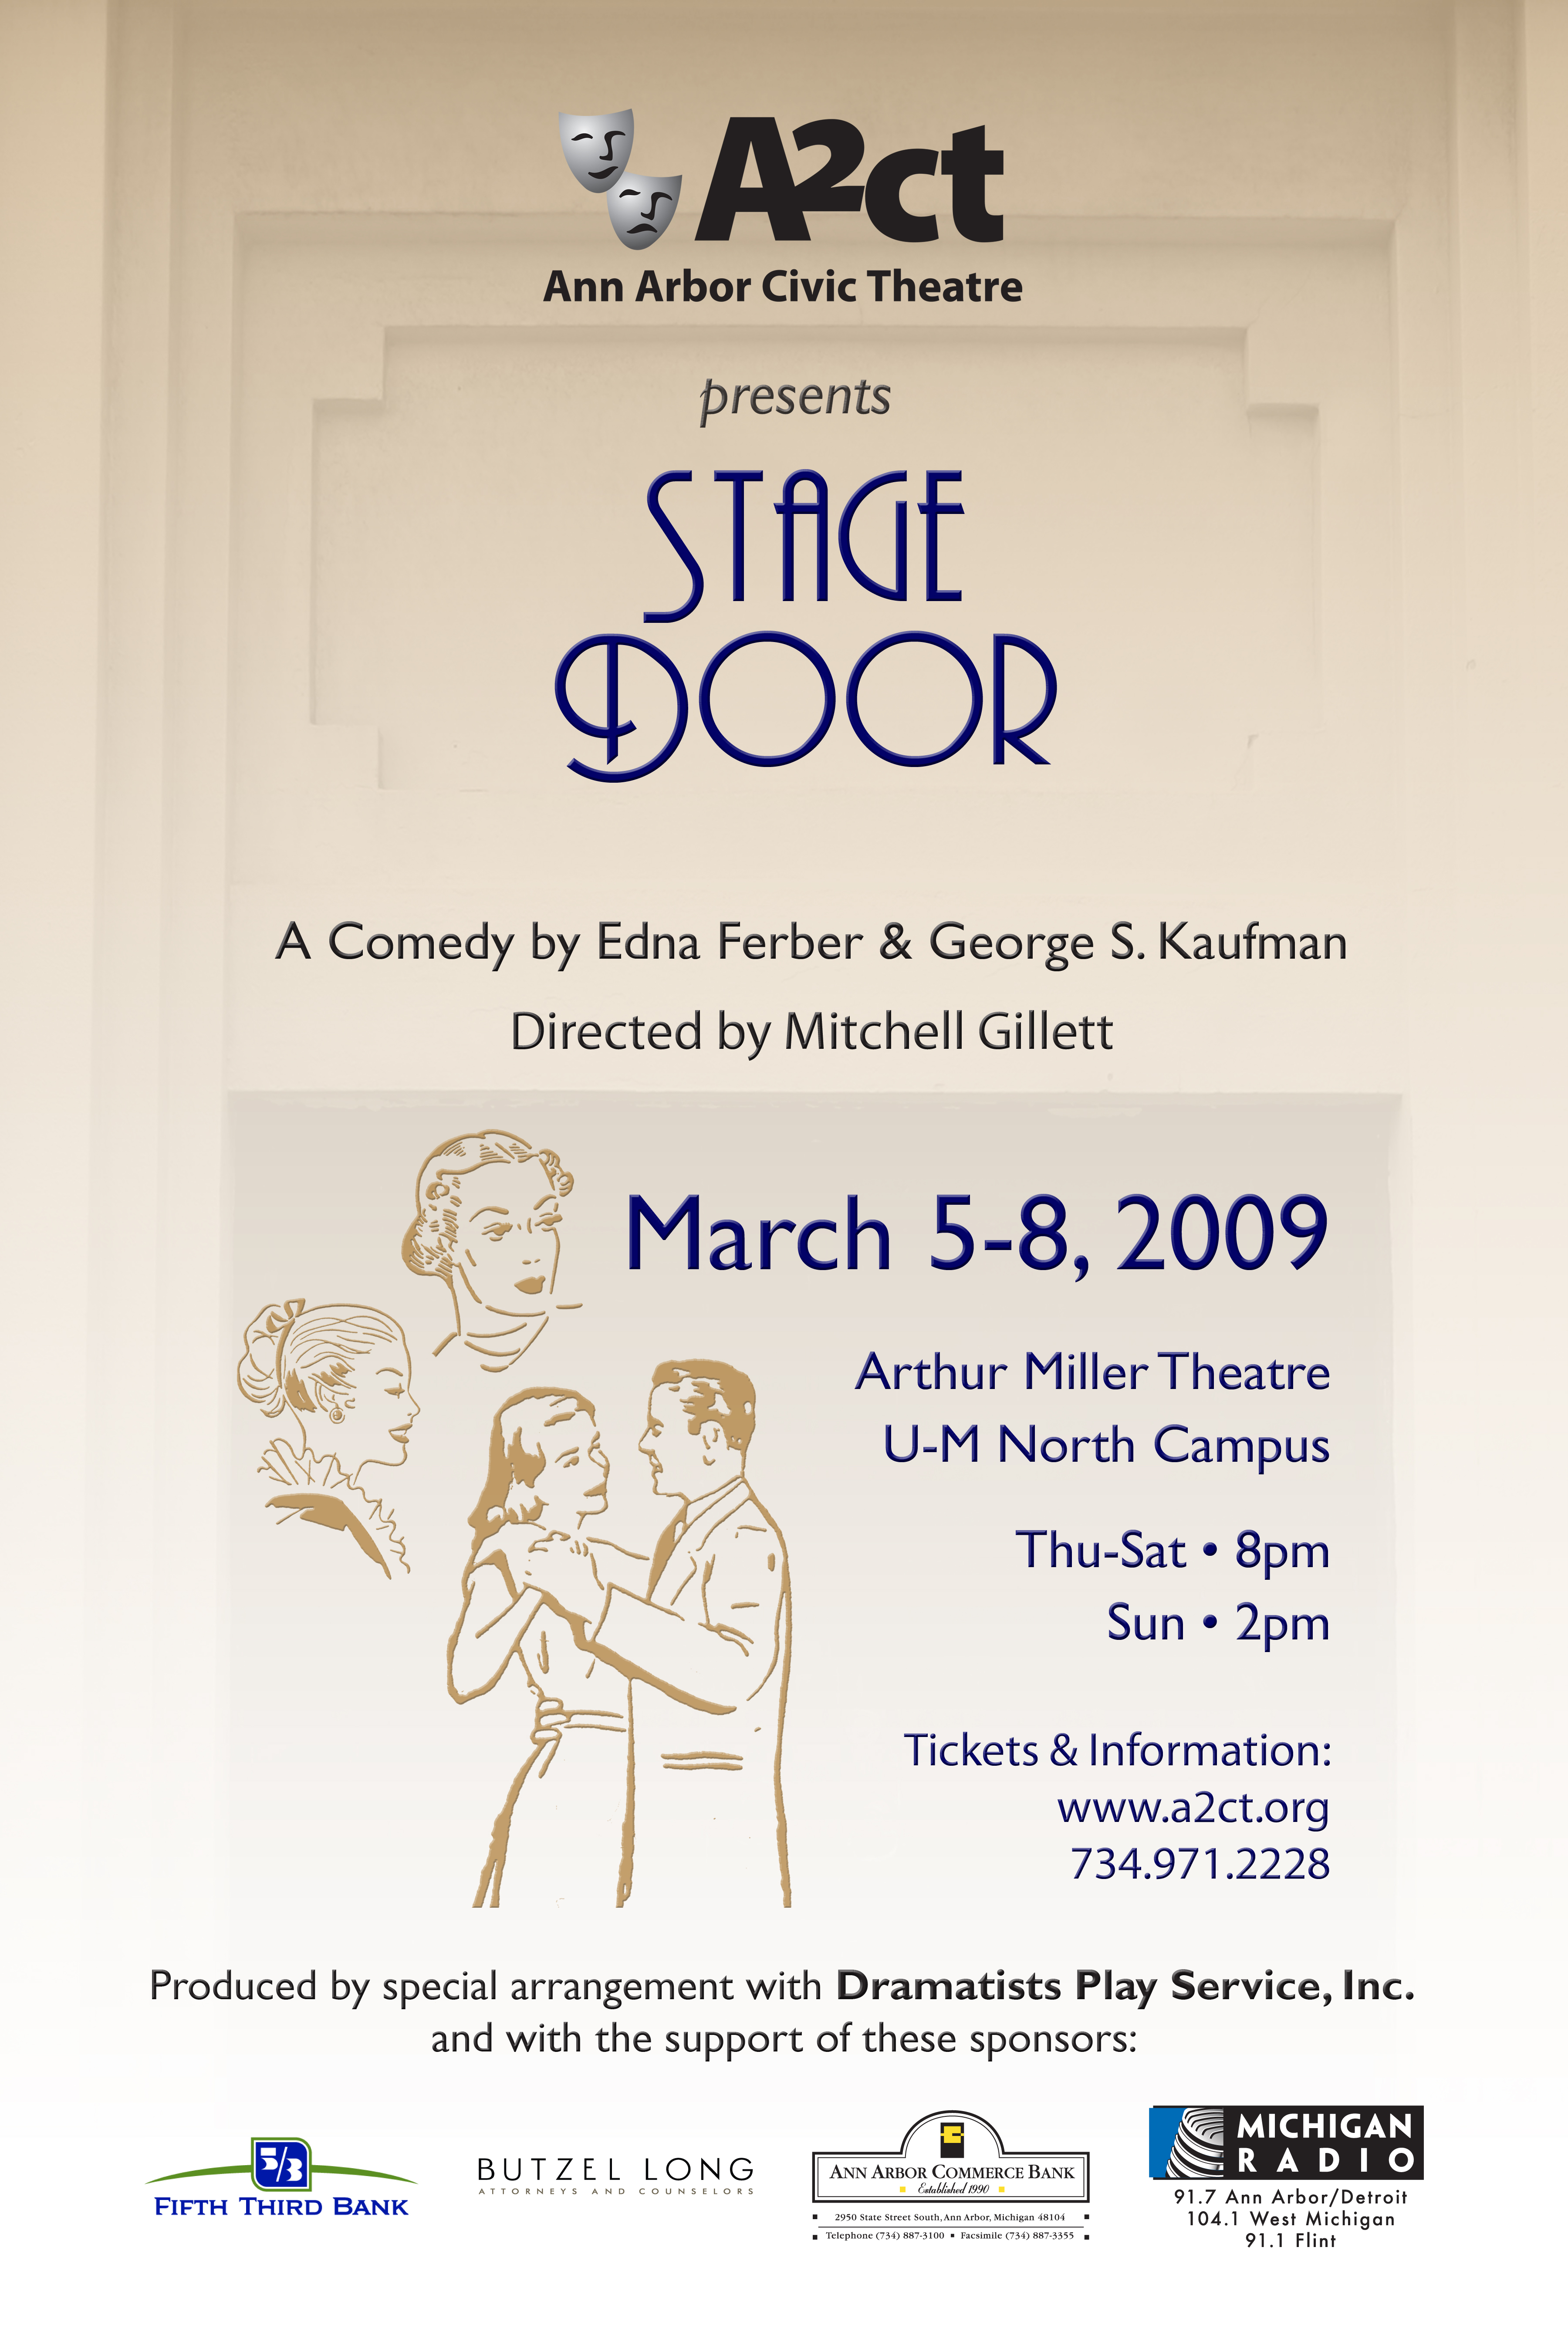 Ann Arbor Civic Theatre Poster: Stage Door image